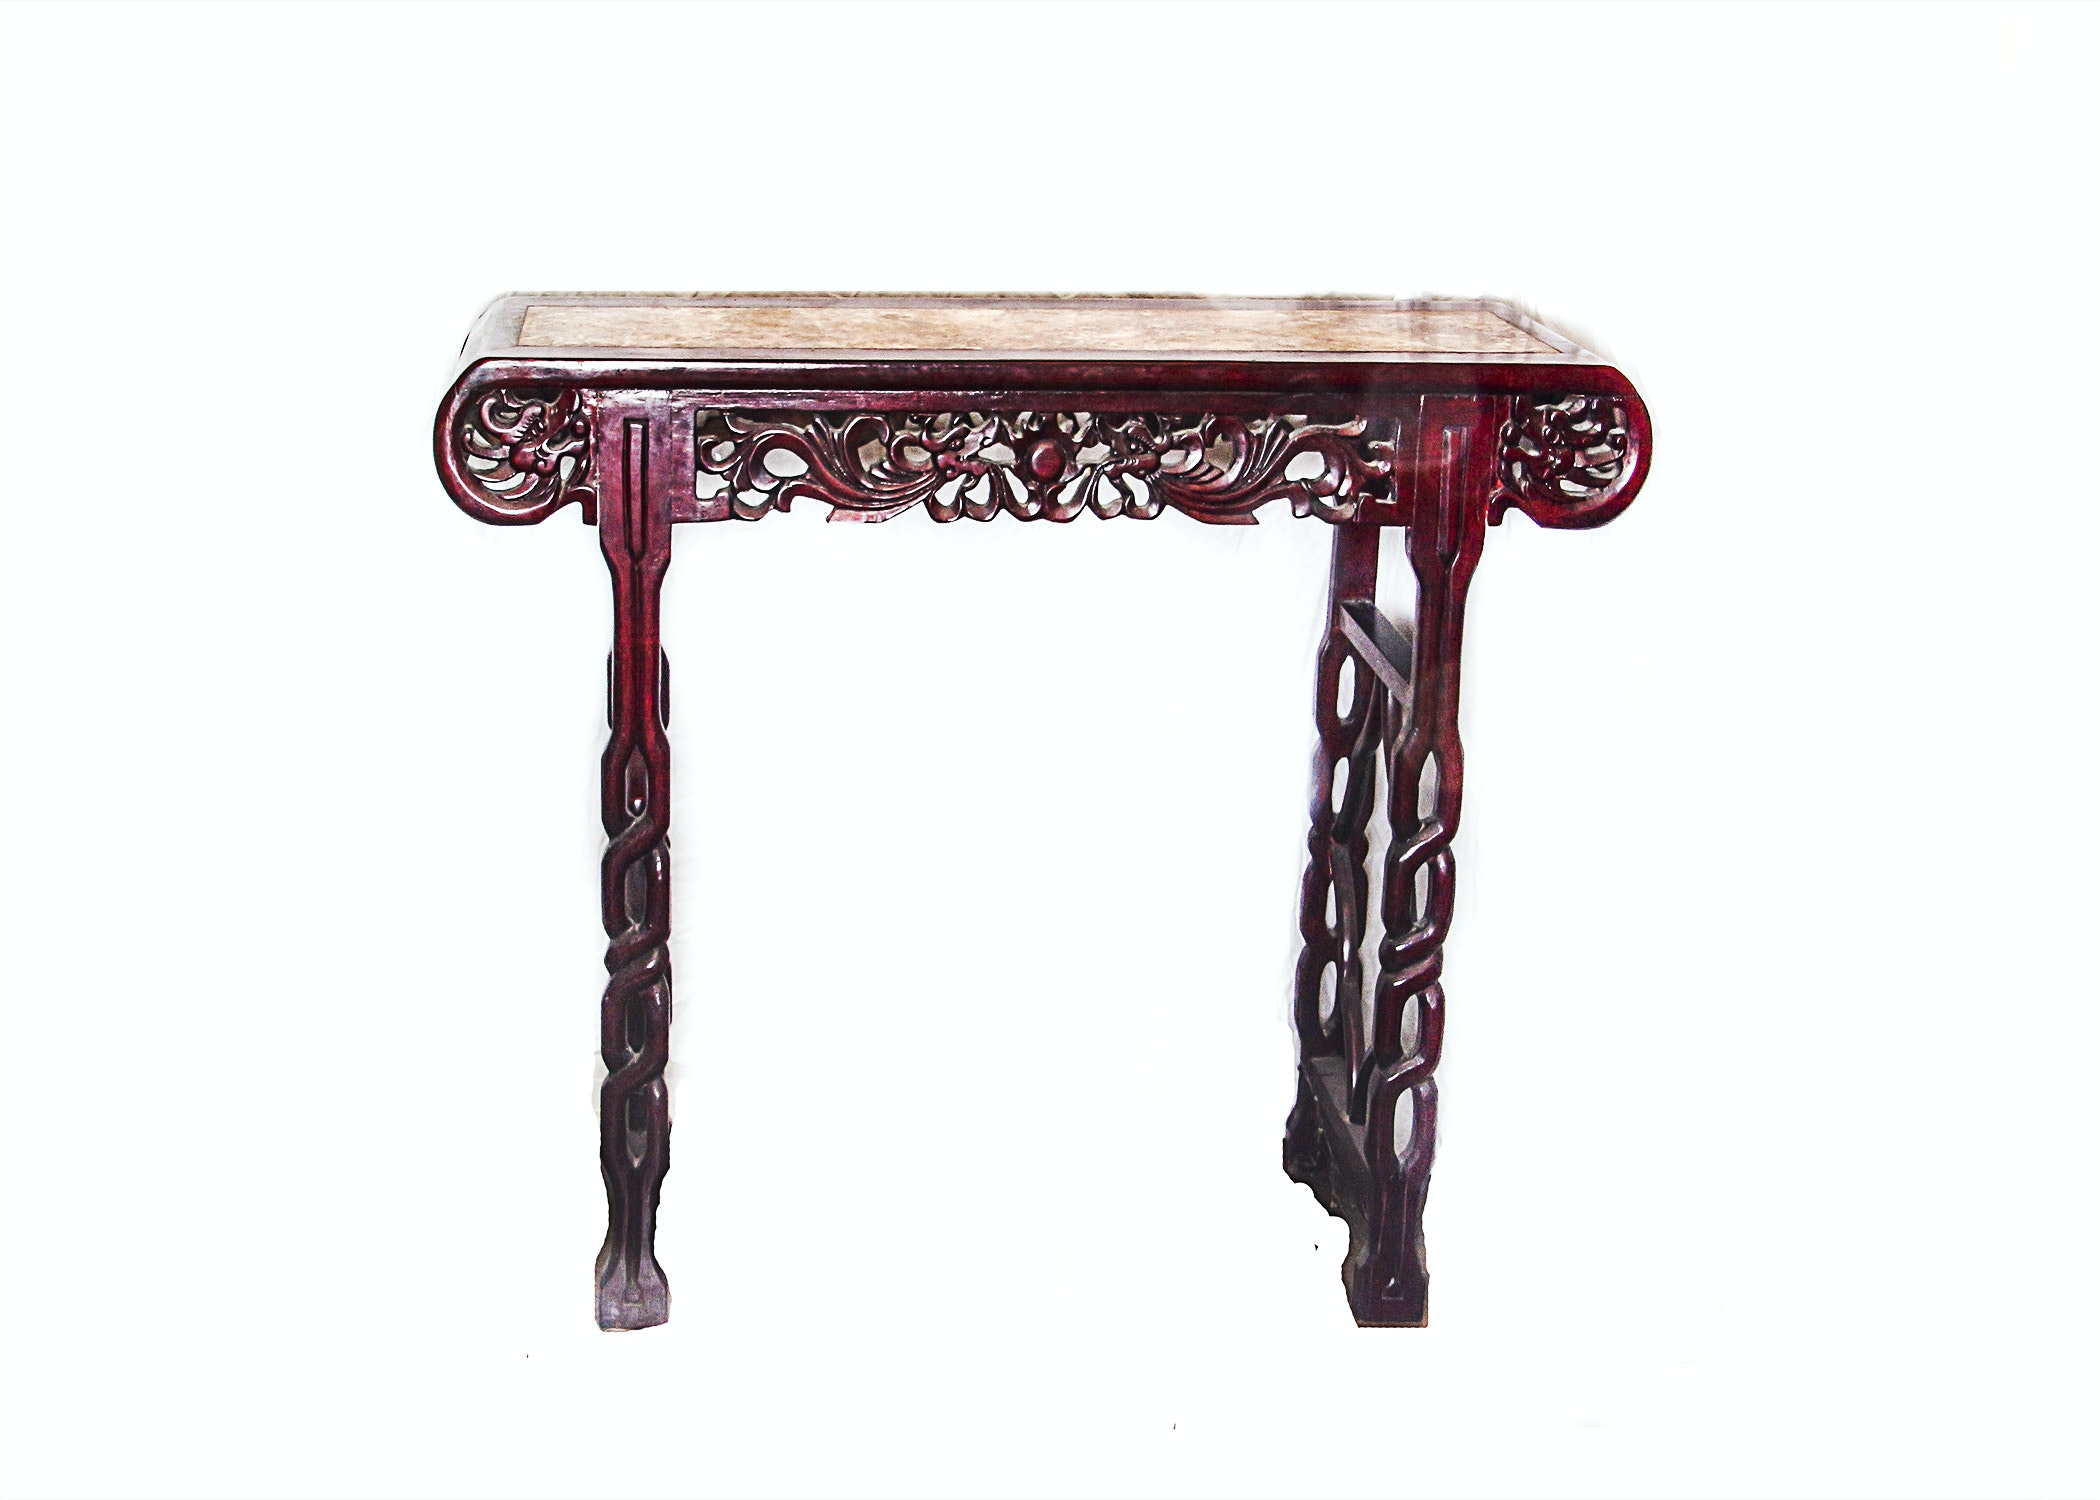 Carved Cherry Asian Side Table with Decorative Marble Inlay